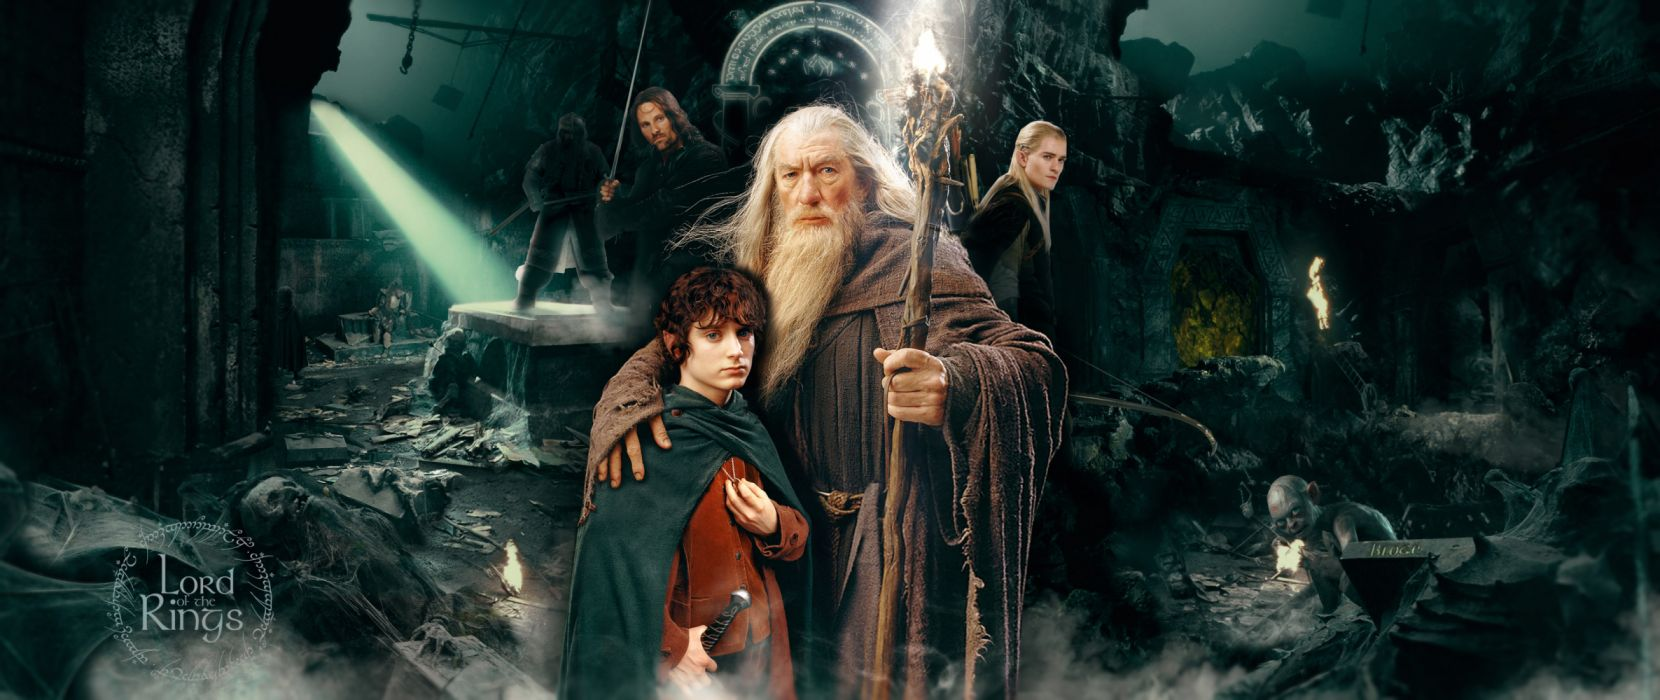 Aragorn Frodo Baggins Gandalf Gimli Lord of the Rings wallpaper